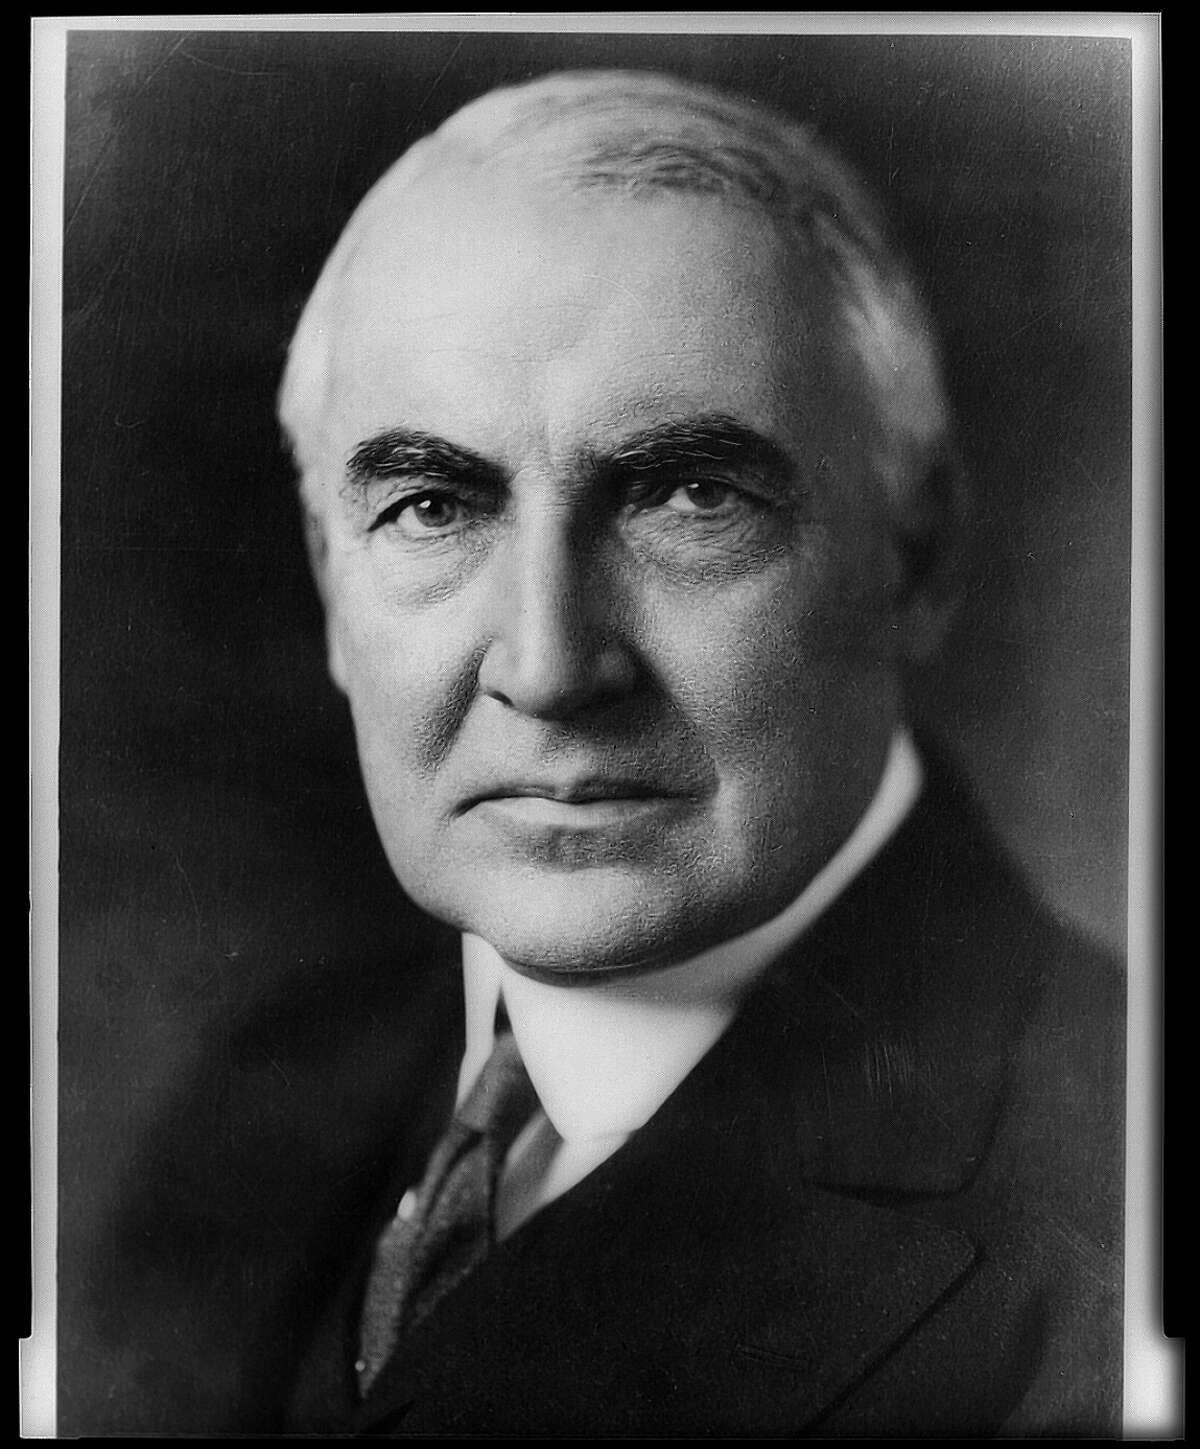 President Warren G. Harding has been said to have black ancestry.